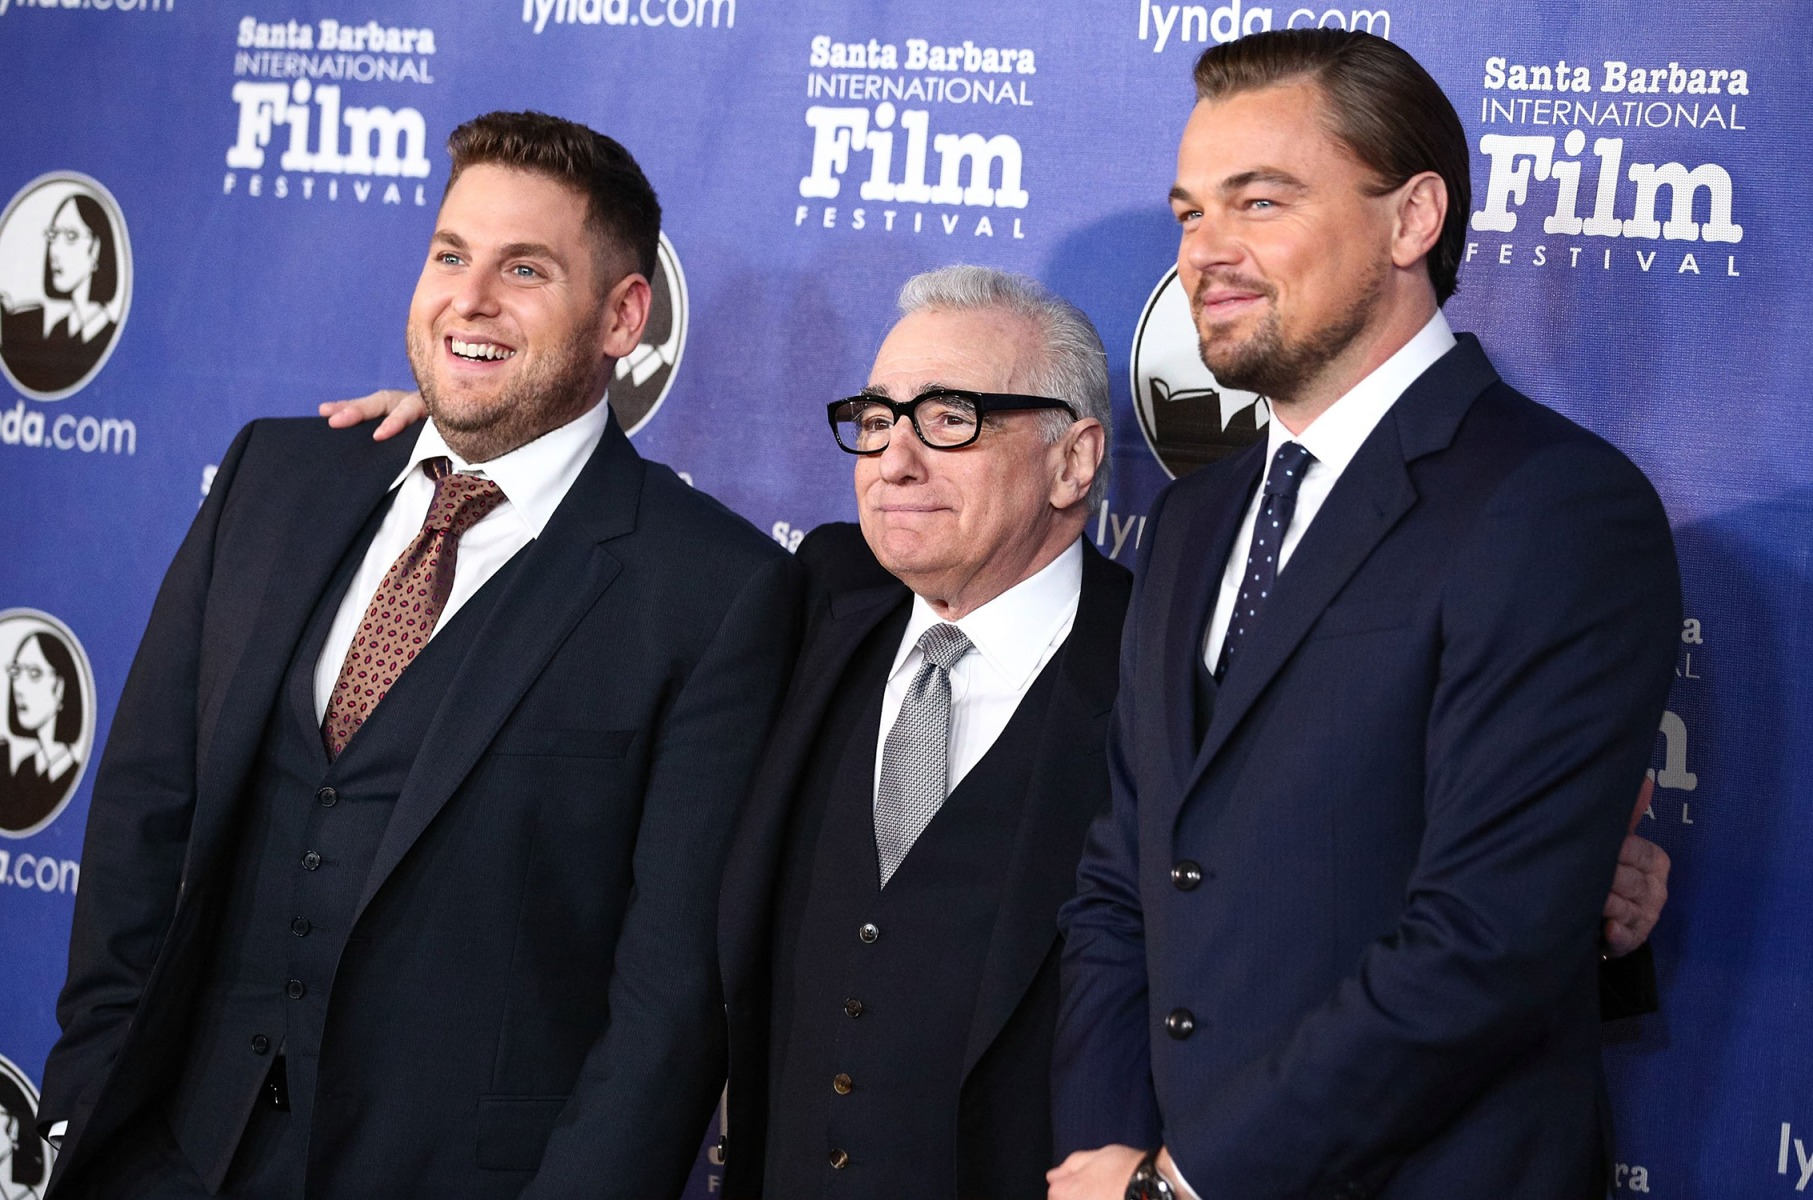 Image: 29h Annual Santa Barbara International Film Festival - Cinema Vanguard Award Honoring Martin Scorsese And Leonardo DiCaprio